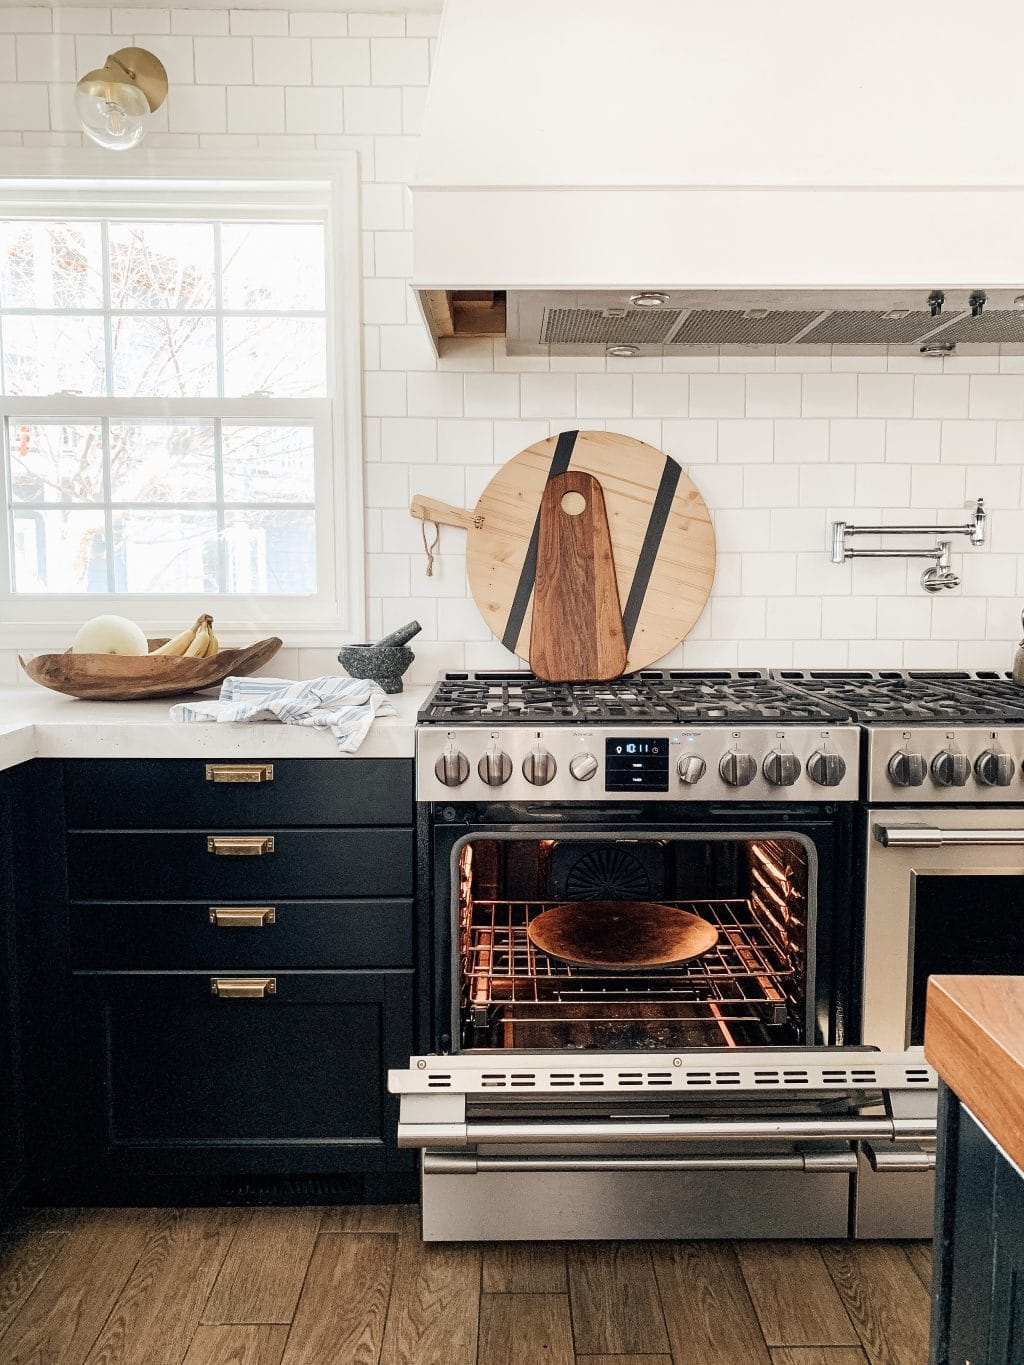 8 Cookware Essentials Every Kitchen Should Have